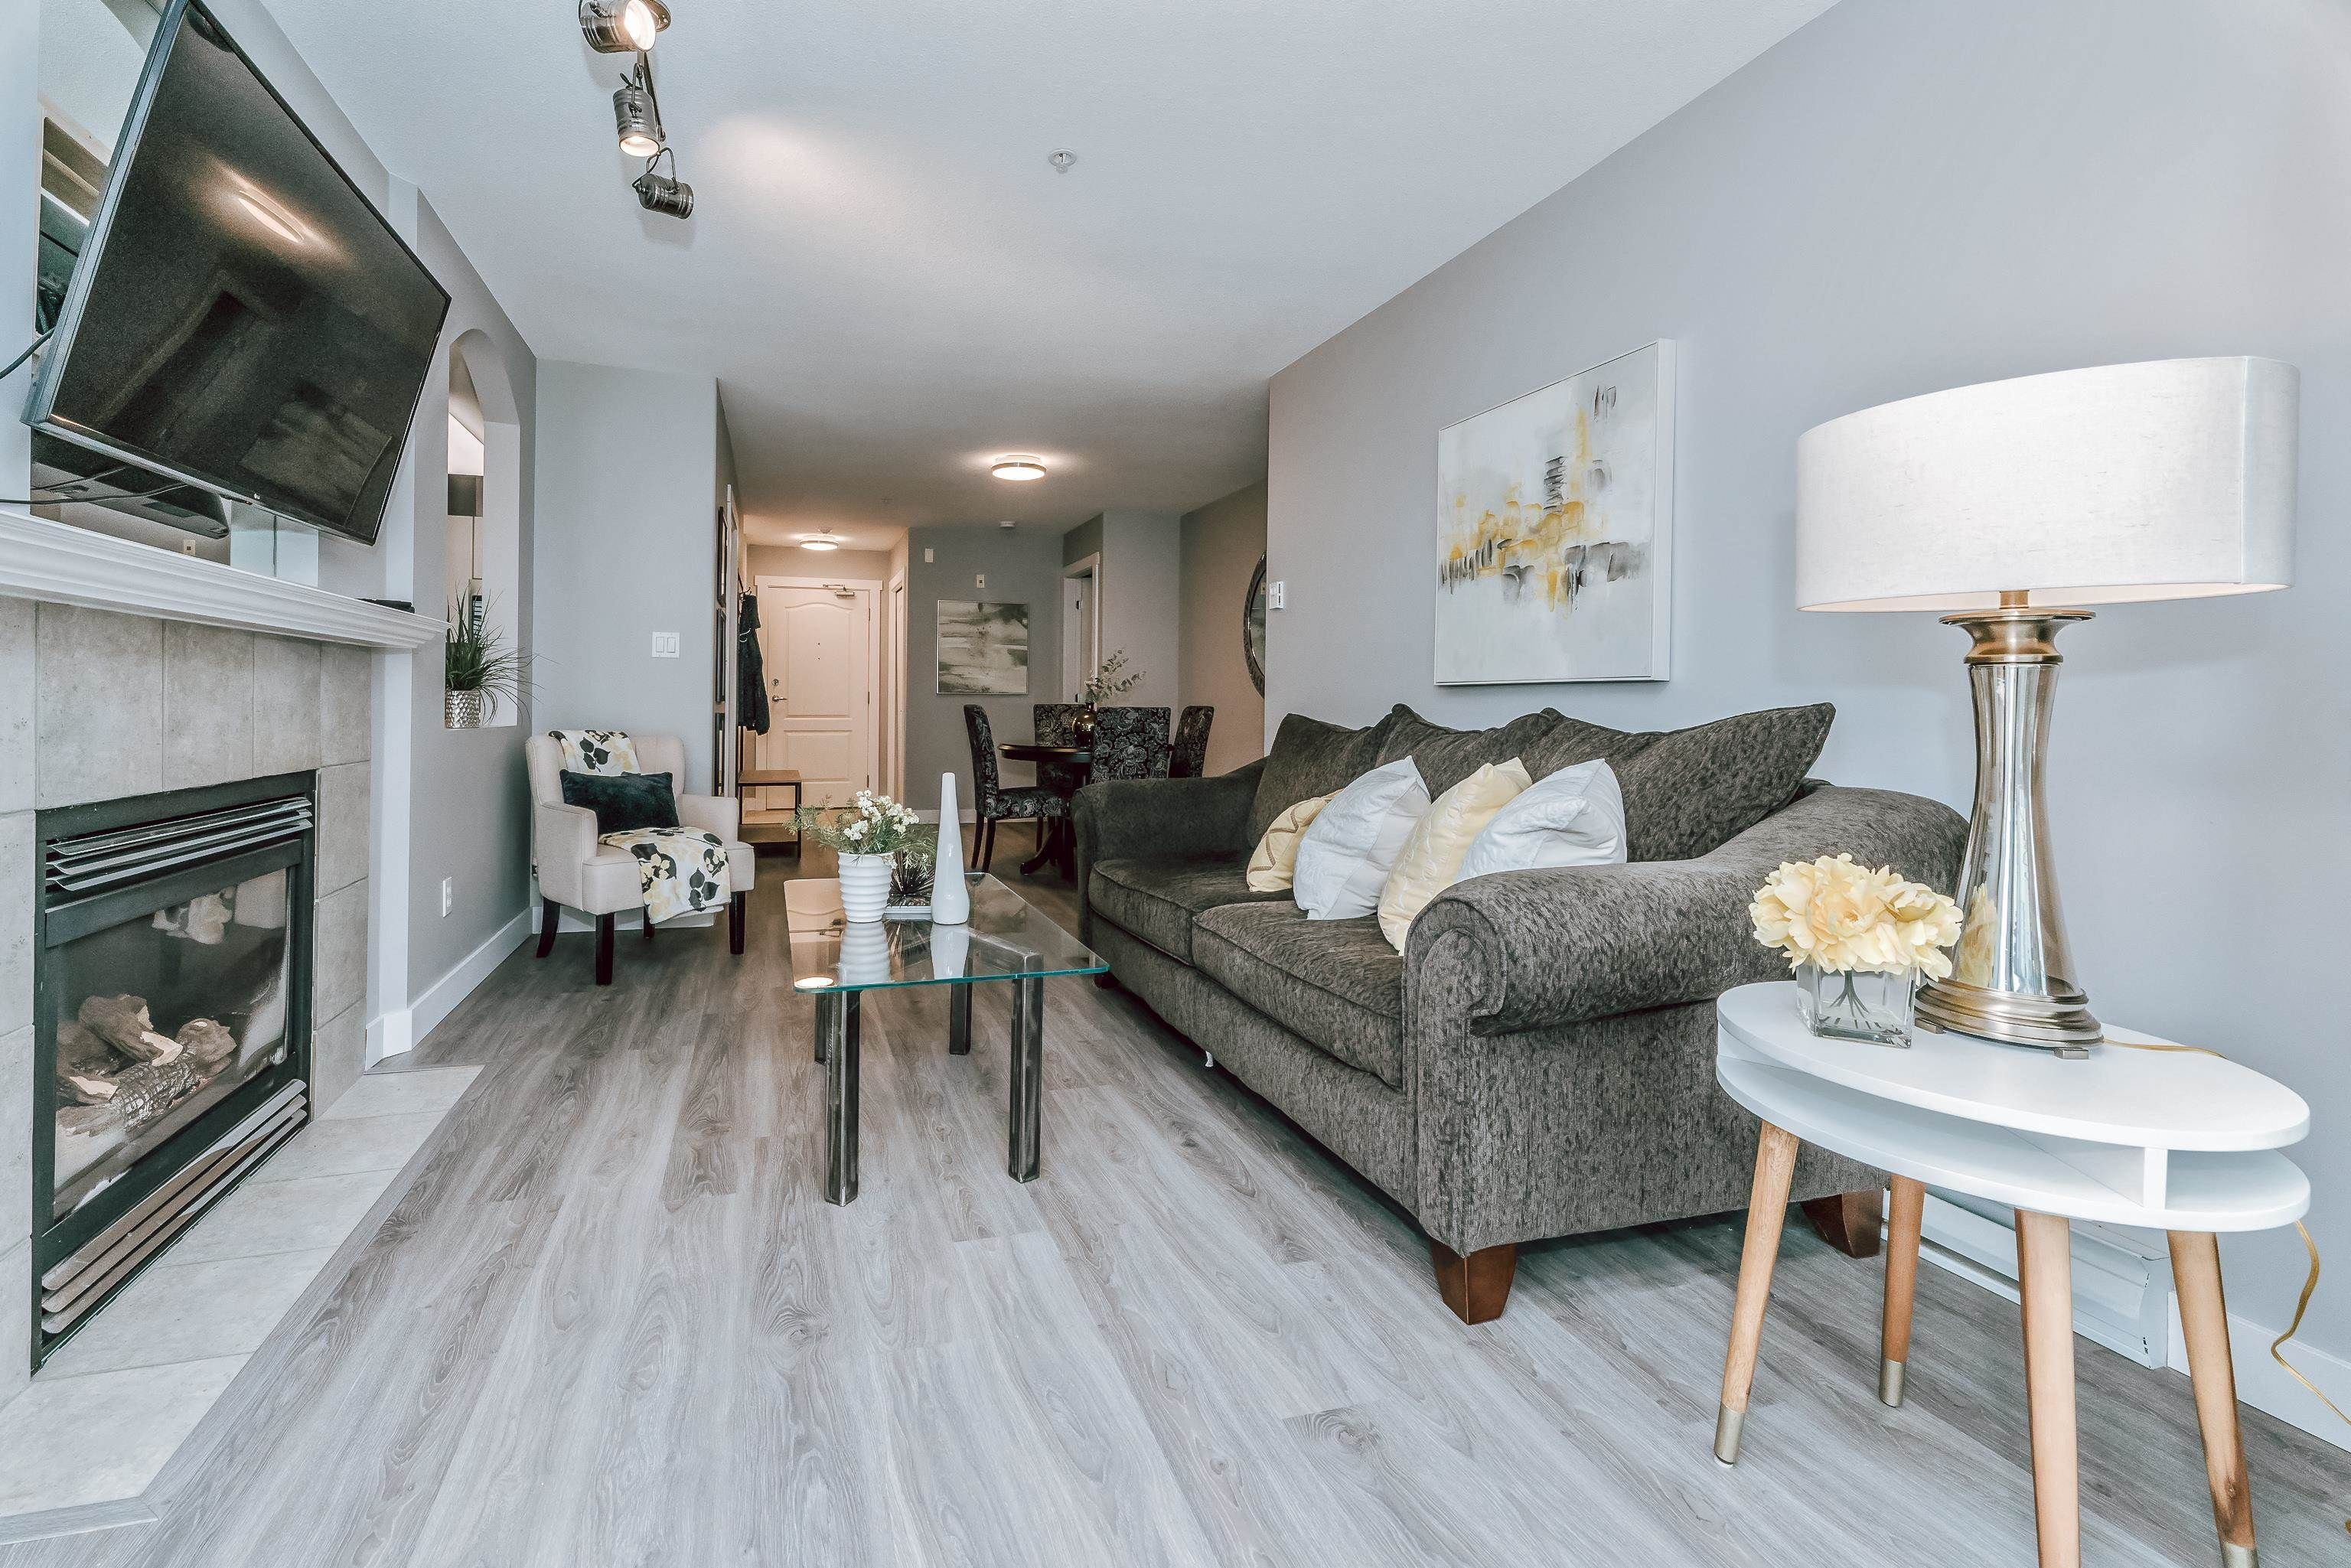 """Photo 4: Photos: 407 22022 49 Avenue in Langley: Murrayville Condo for sale in """"Murray Green"""" : MLS®# R2613823"""